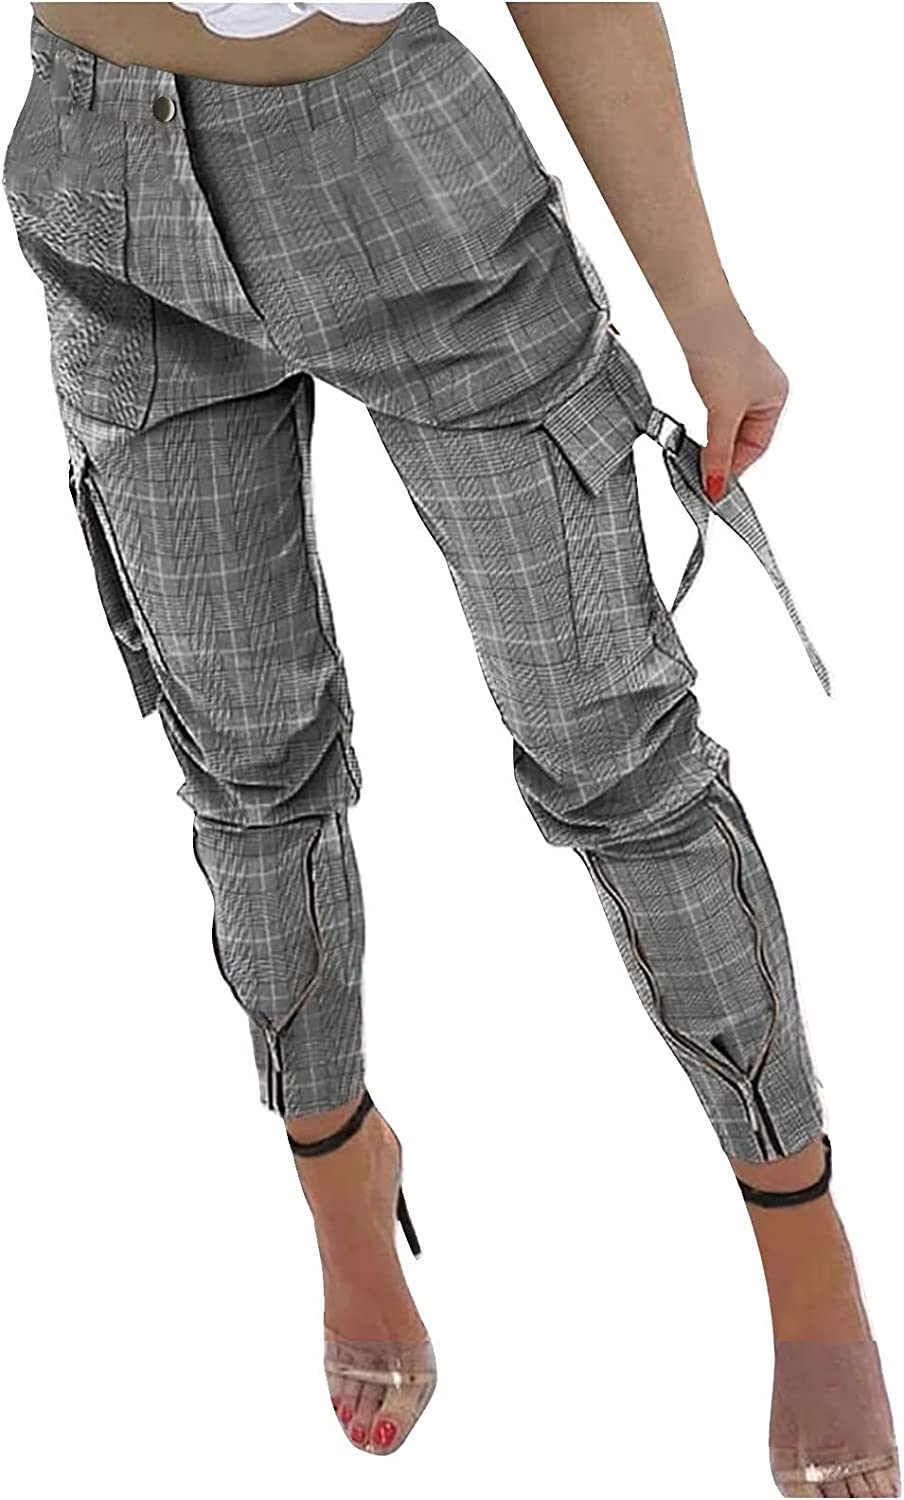 NREALY Women's Cargo Pants Color Block Skinny Zipper Plaid Trousers with Pocket